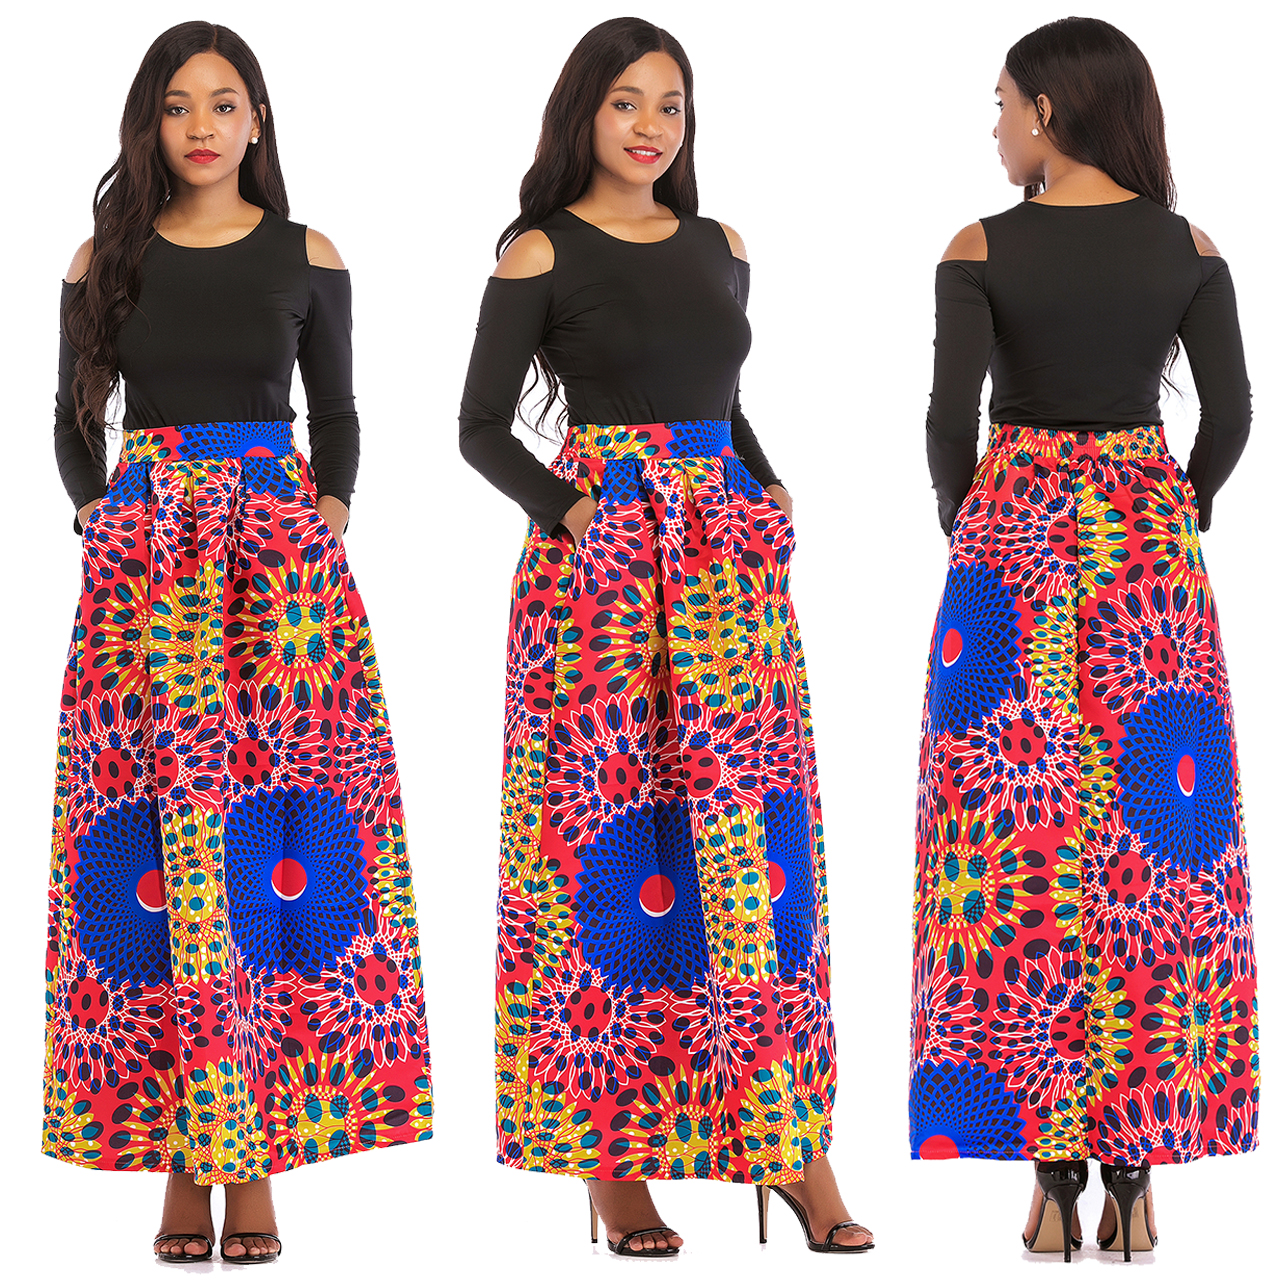 192d6df67b US$ 10.86 - Long Sleeve Black Top and African Print Maxi Skirt - www.global -lover.com